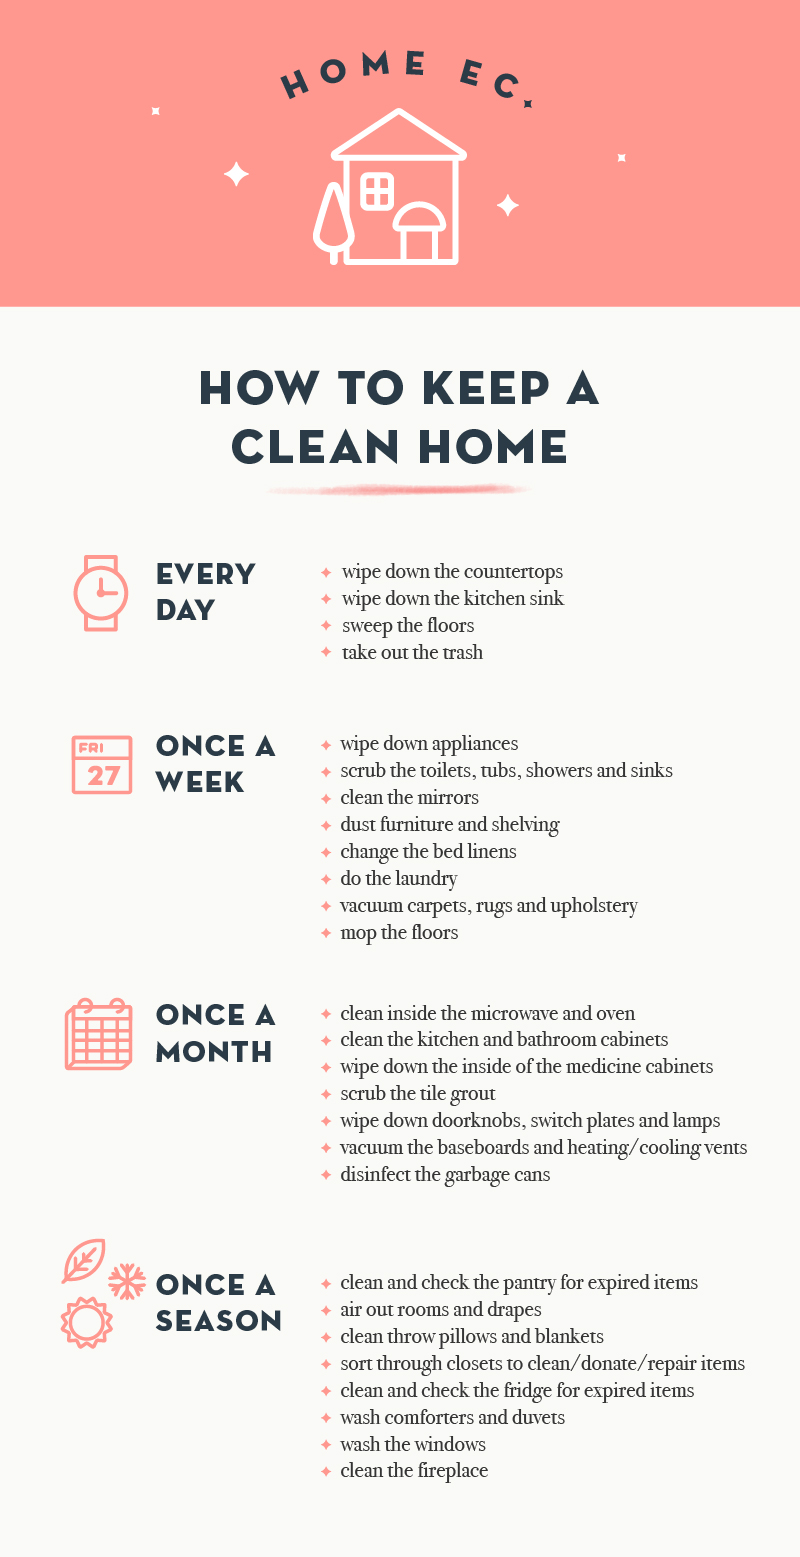 Home Ec How To Keep A Clean Home